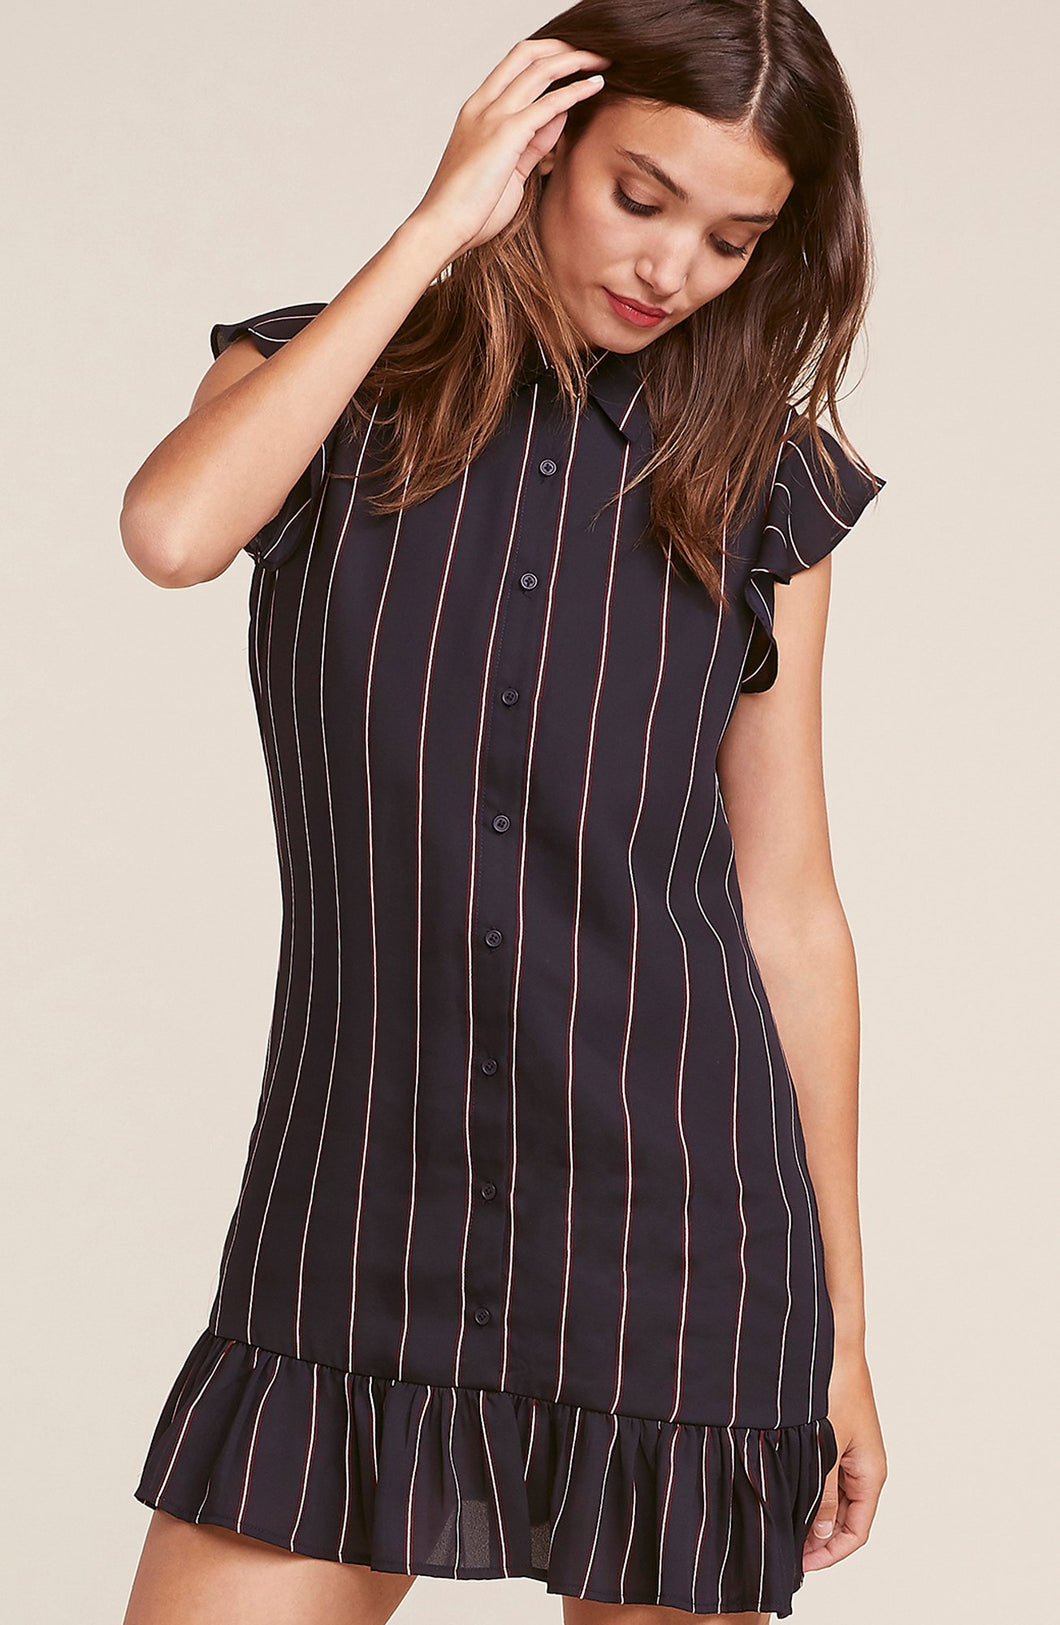 American Pie Shirt Dress